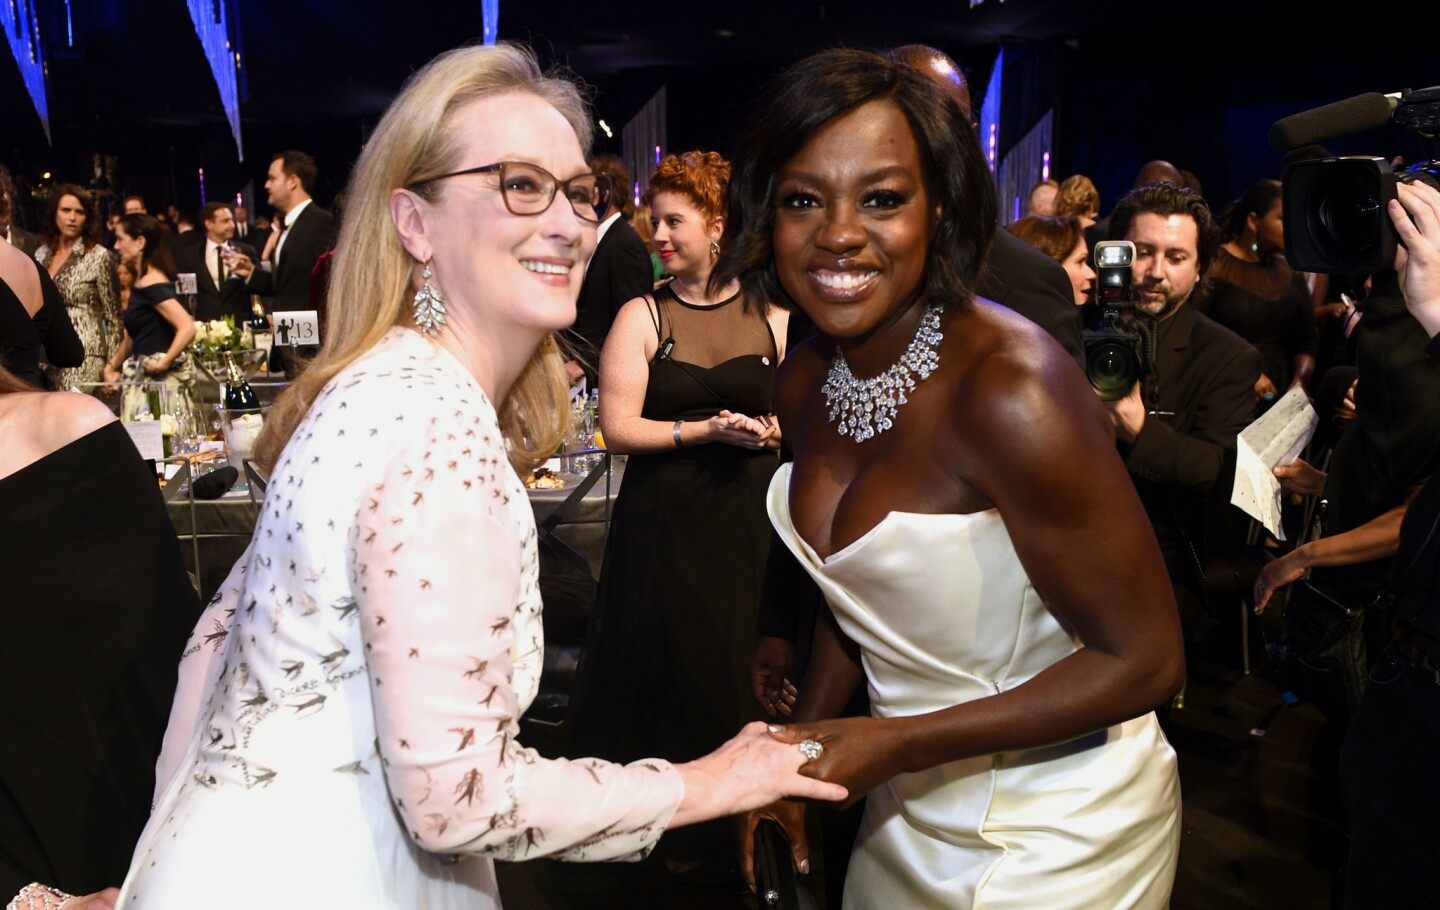 Meryl Streep, left, and Viola Davis attend the 23rd annual Screen Actors Guild Awards at the Shrine Auditorium & Expo Hall on Sunday, Jan. 29, 2017, in Los Angeles. (Photo by Chris Pizzello/Invision/AP)